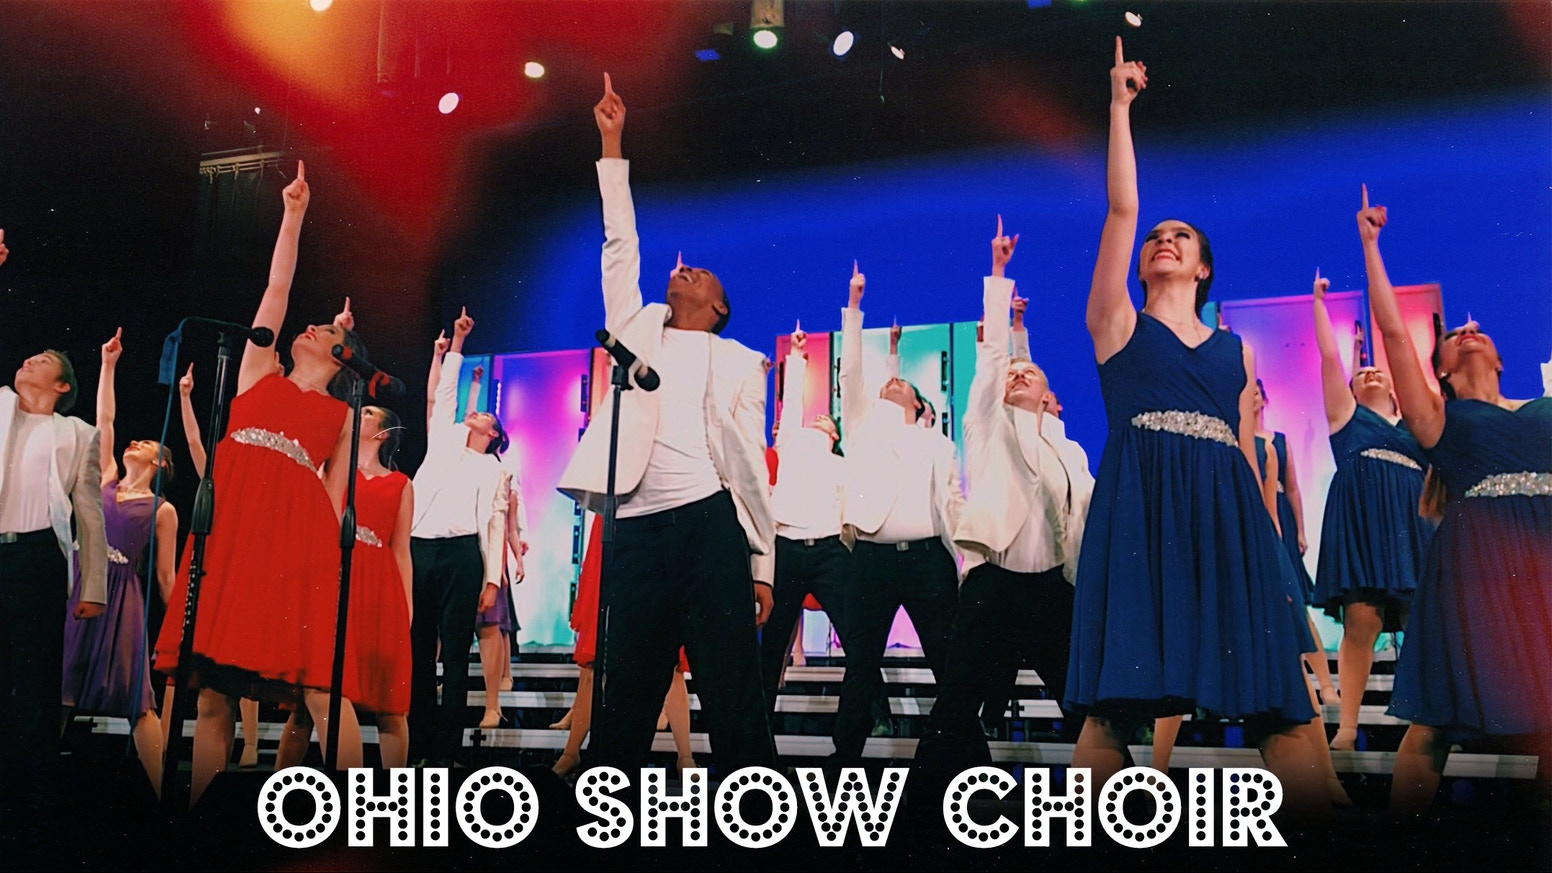 Our feature-length documentary follows four unique high school show choirs through grit, glamour, and a chance at glory.